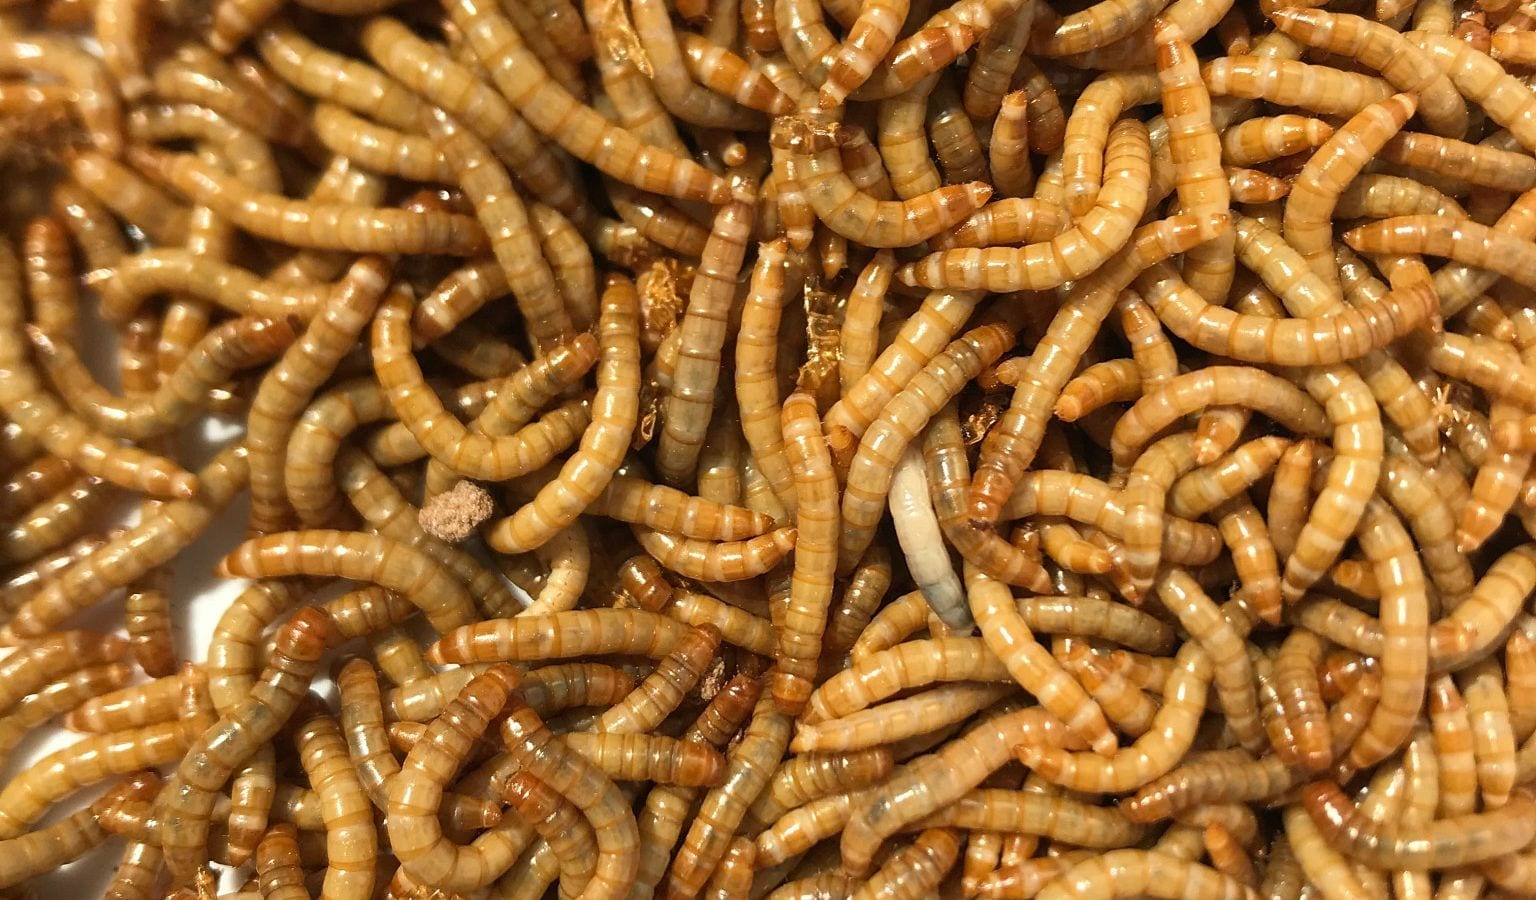 The yellow mealworm species Tenebrio molitor. An IUPUI-led study finds the insect could serve as a good alternate protein source in agriculture. Photo by Ti Eriksson, Beta Hatch